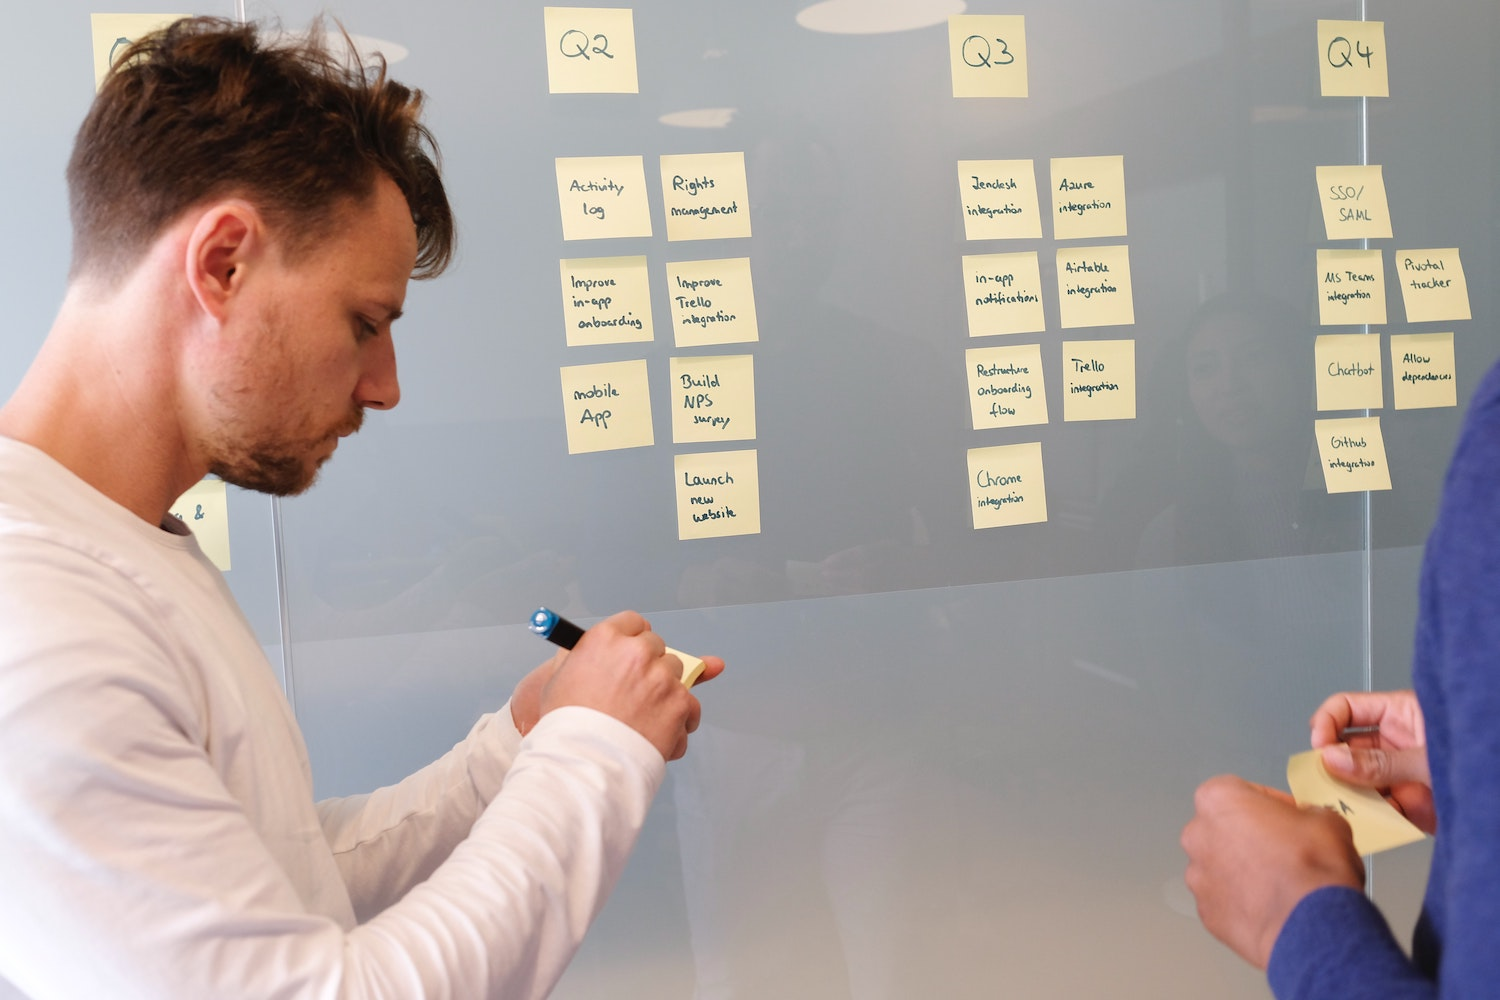 Concise Software - software development process planning